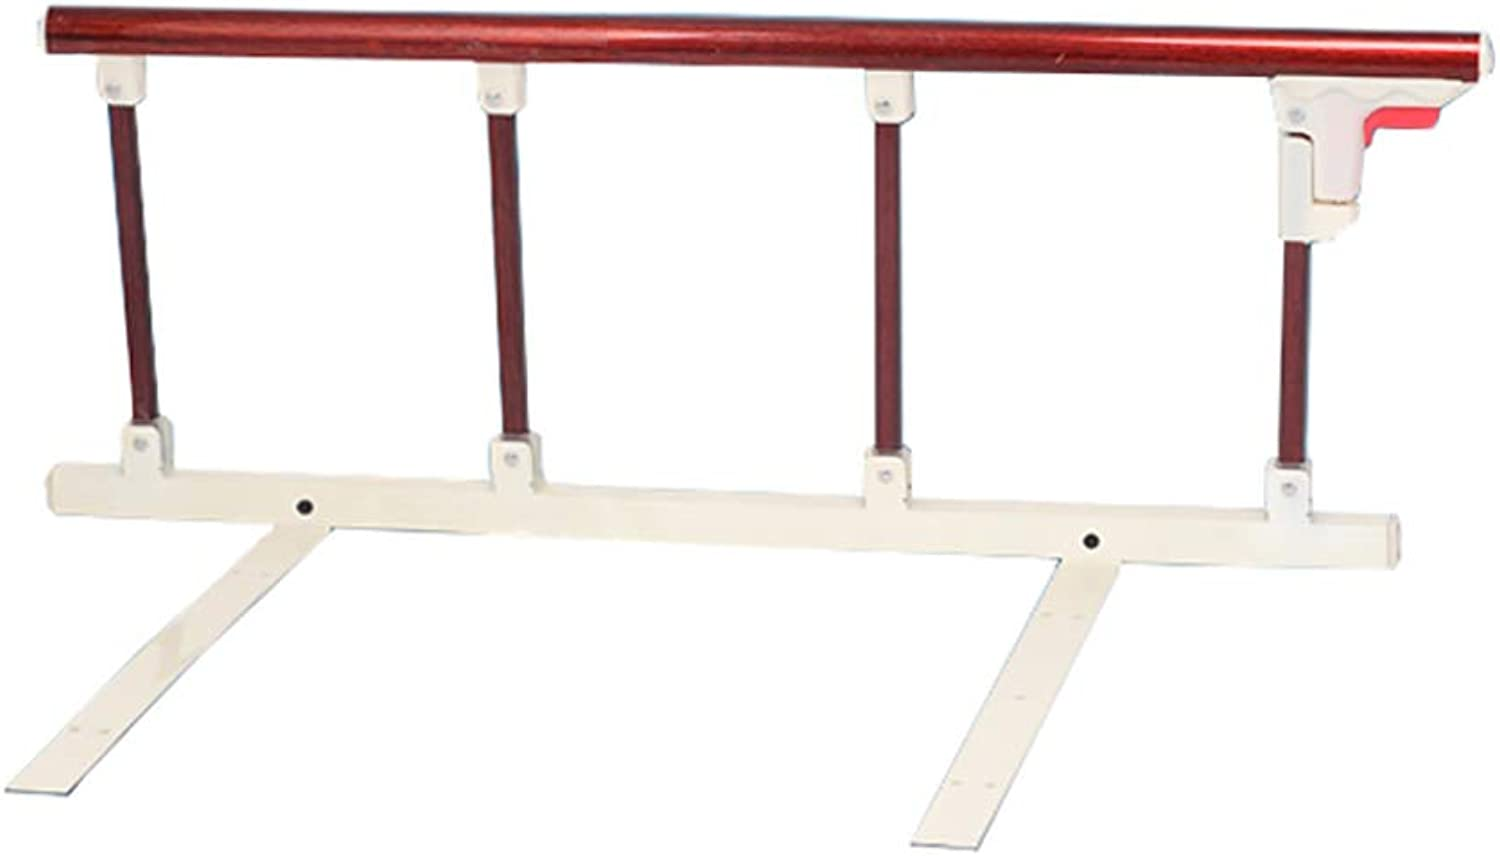 Bed Guardrail Folding Bed Guardrail for Elderly, Anti-Fall Bed Side Guard for Hospital Adults Assist, Medical Handicap Railing Bumper Bar Baffle (Size   Punch Free)